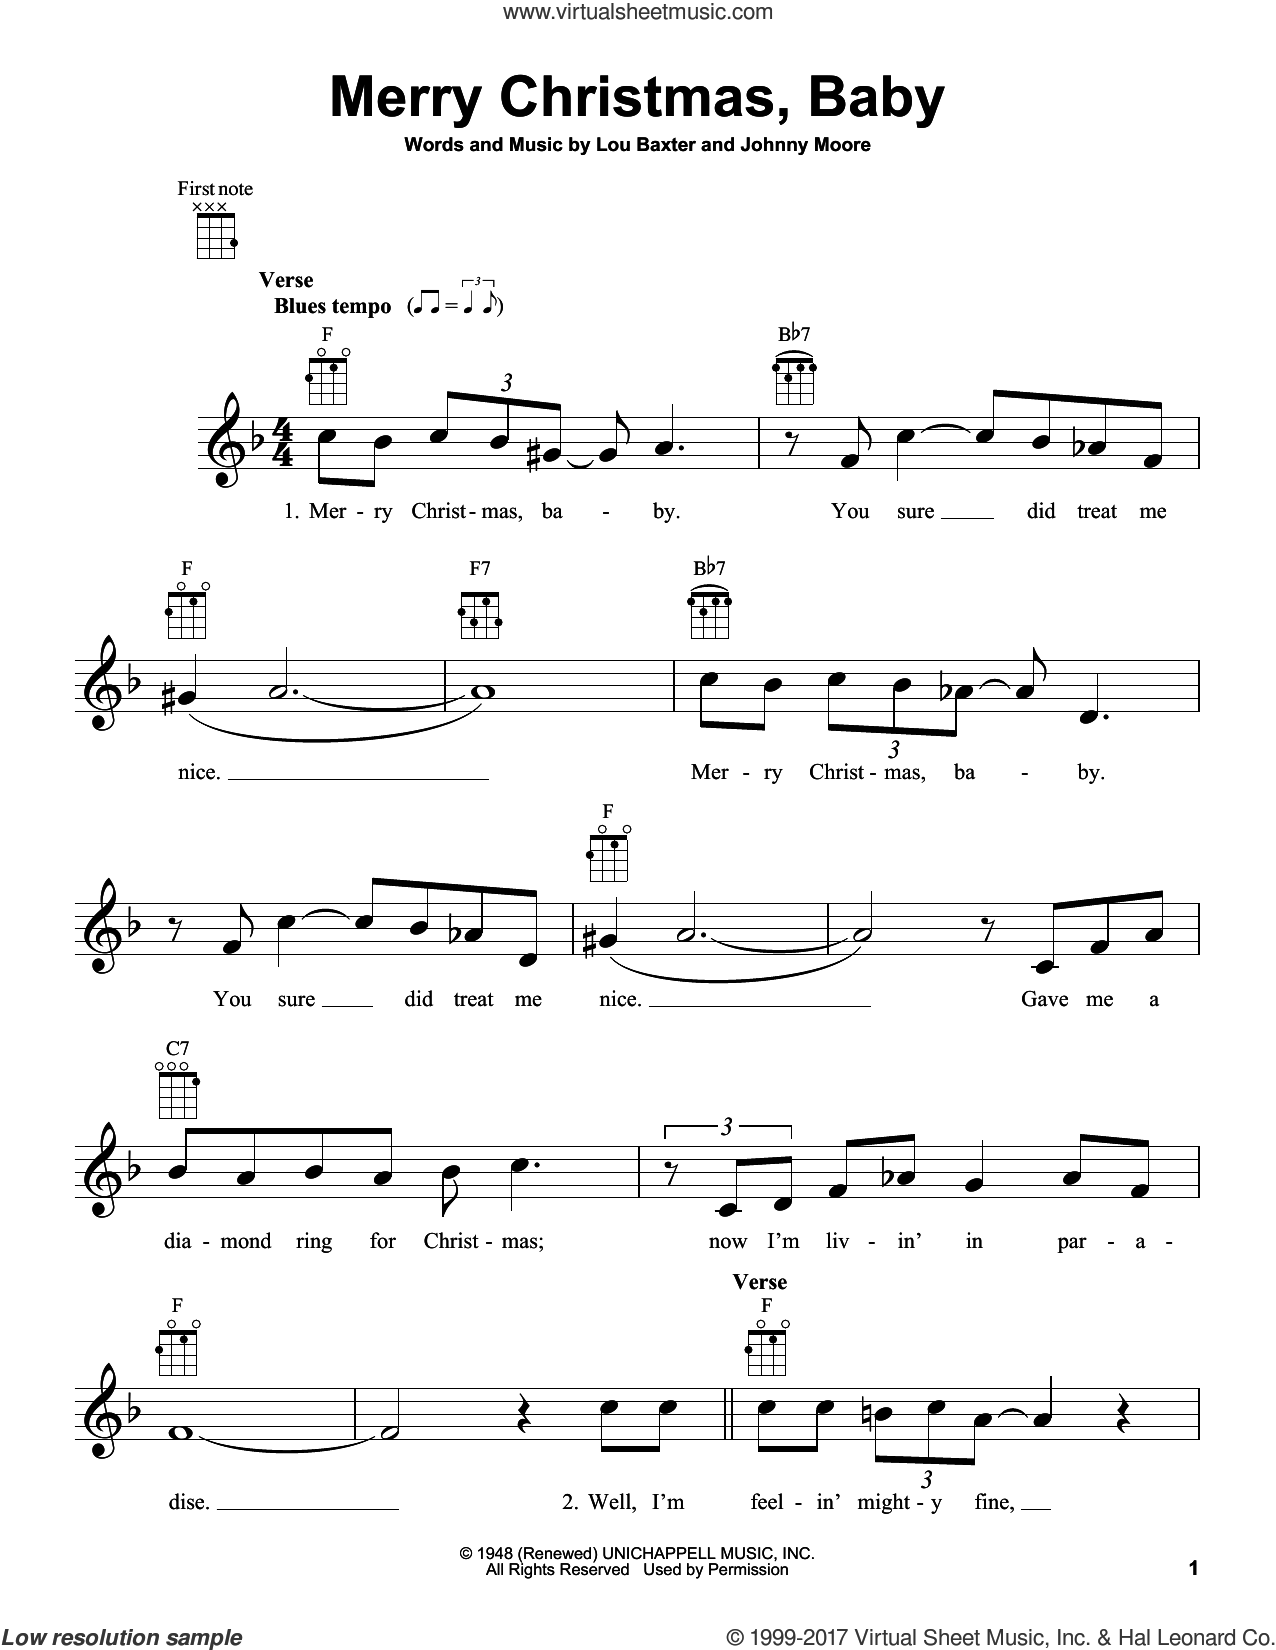 Merry Christmas, Baby sheet music for ukulele by Elvis Presley, Johnny Moore and Lou Baxter, intermediate skill level